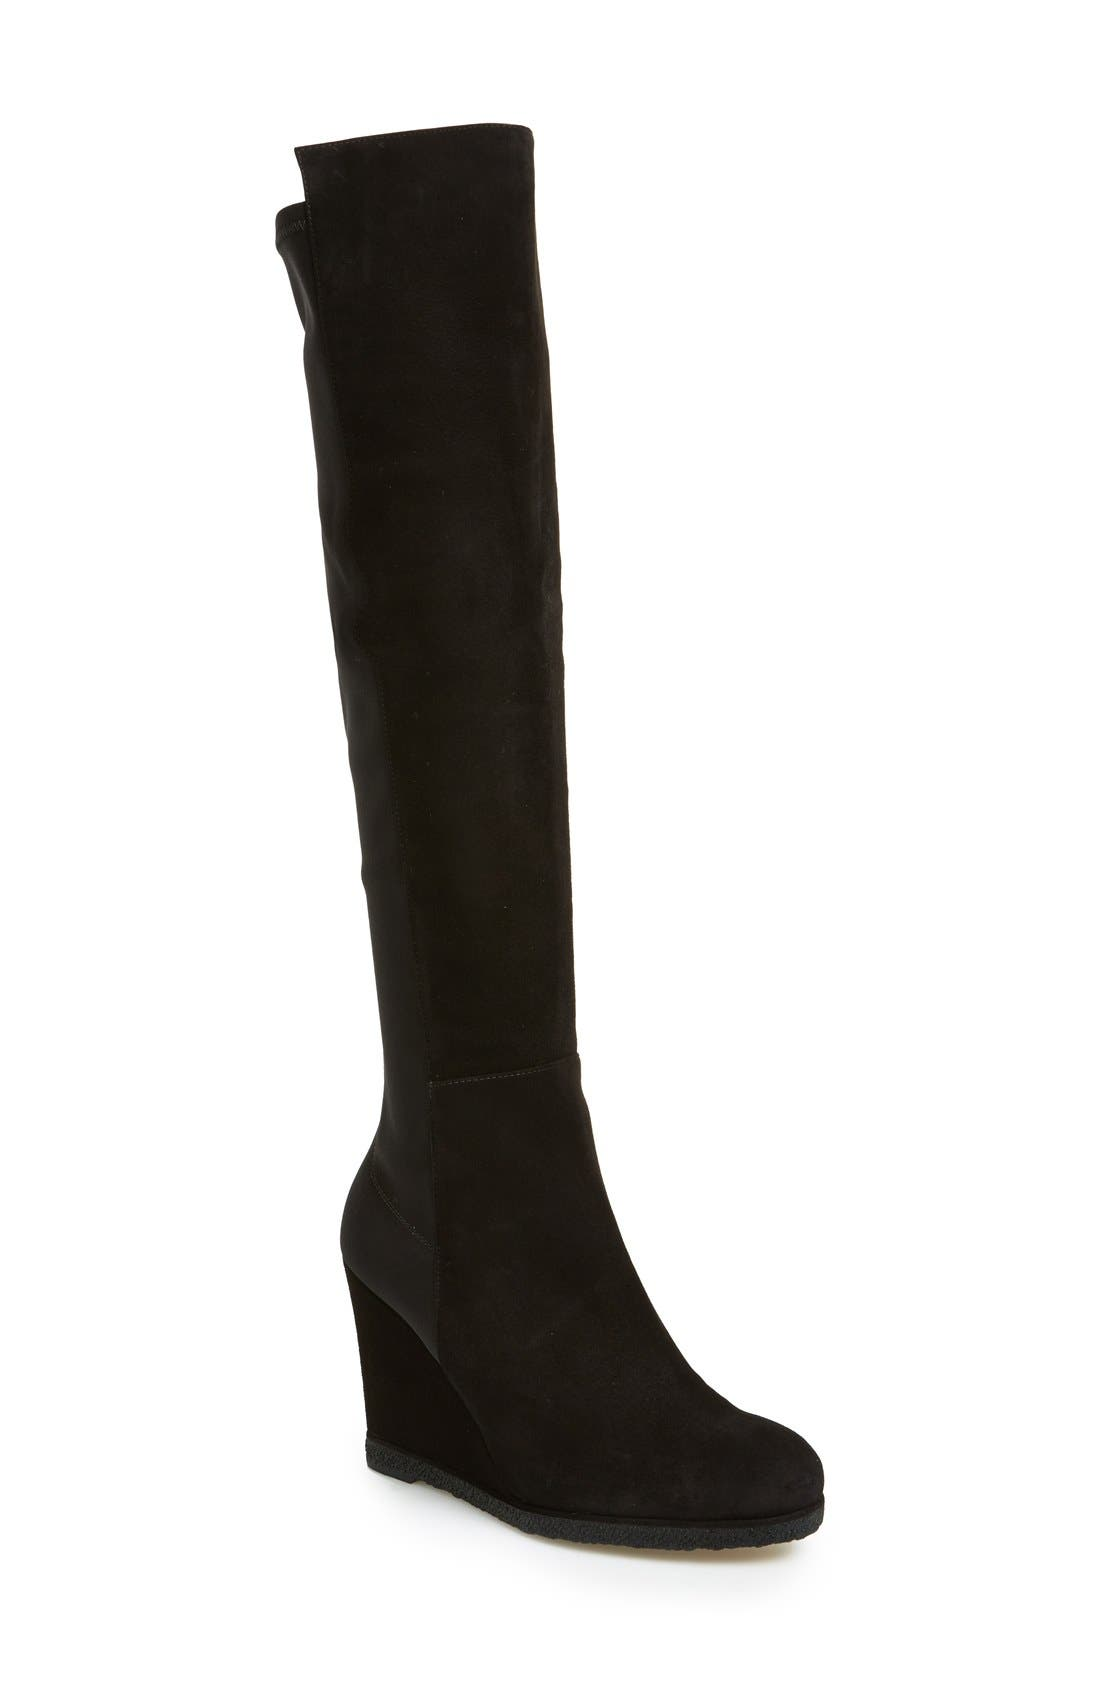 Alternate Image 1 Selected - Stuart Weitzman 'Demiswoon' Over the Knee Boot